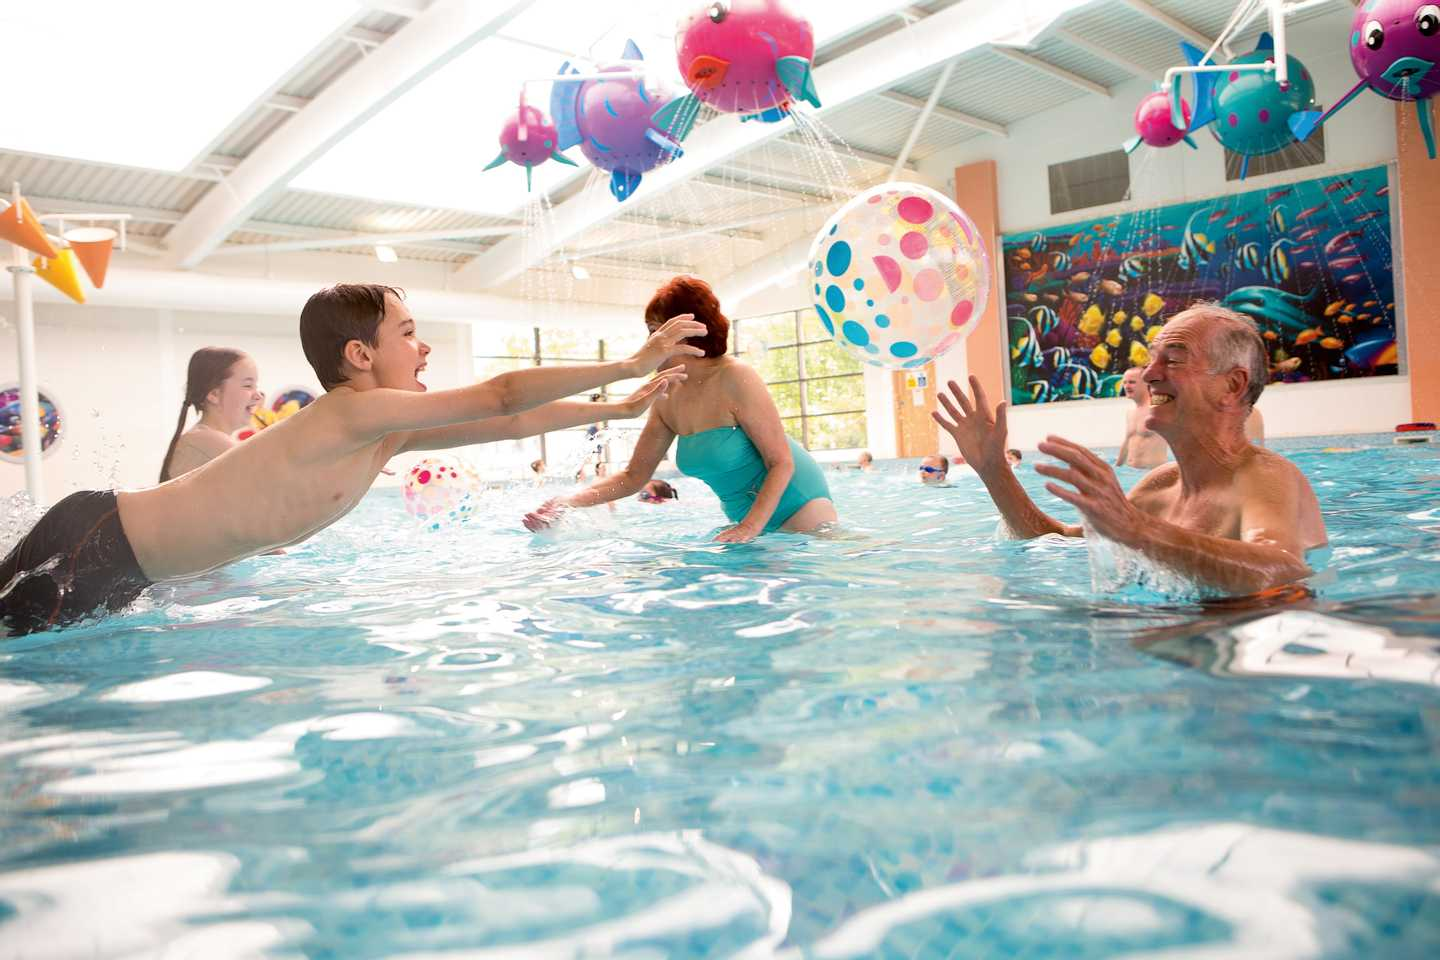 A family playing the in indoor pool